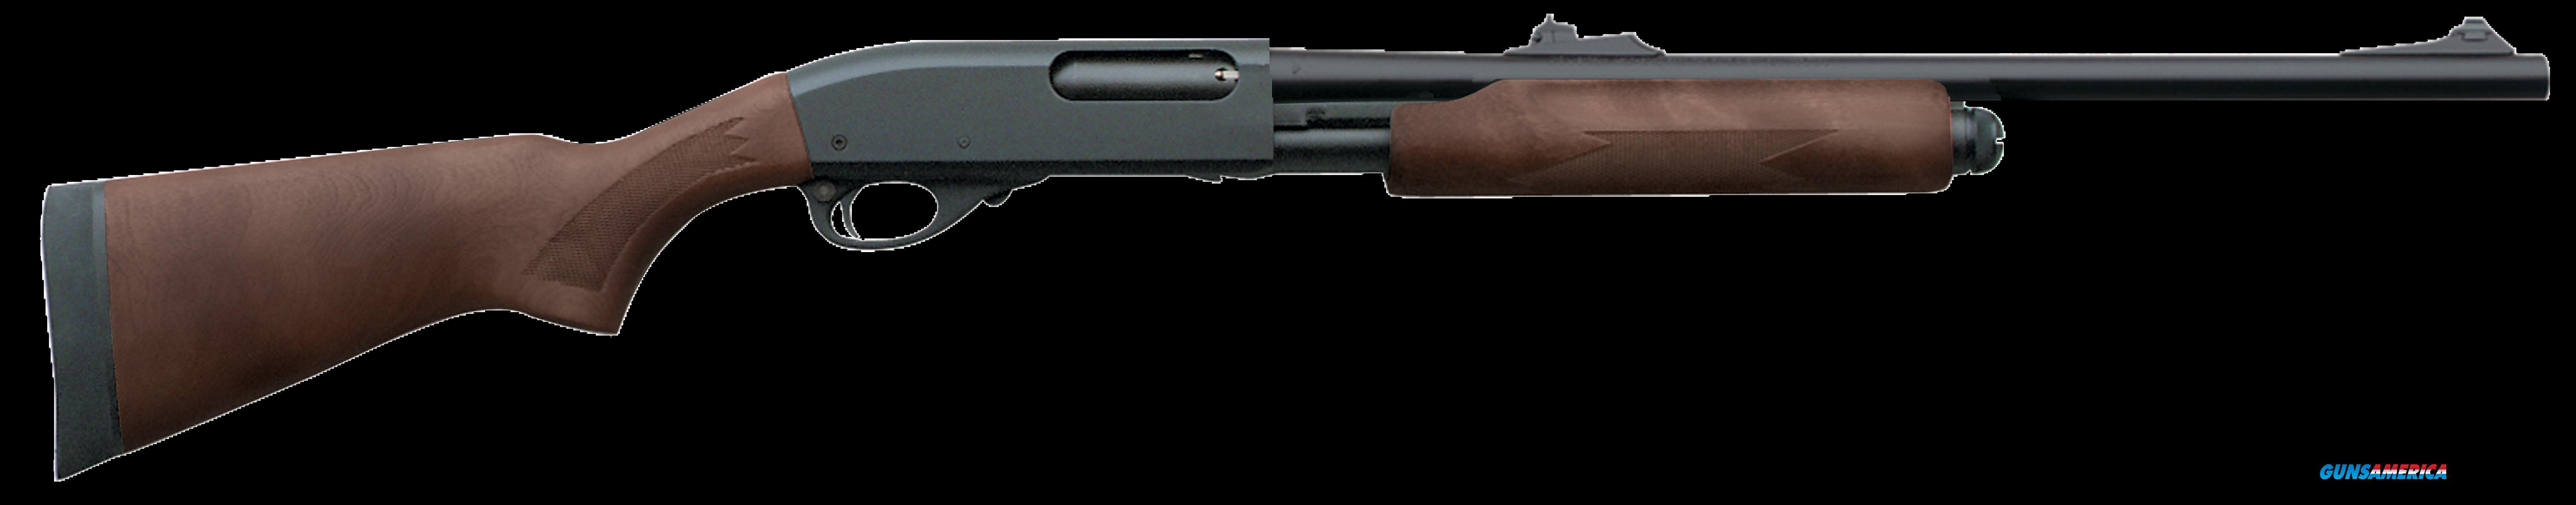 "Remington Firearms 25565 870 Pump 12 Gauge 20"" 3"" Walnut Stk Black Rcvr Plain Barrel Improved  Guns > Shotguns > R Misc Shotguns"